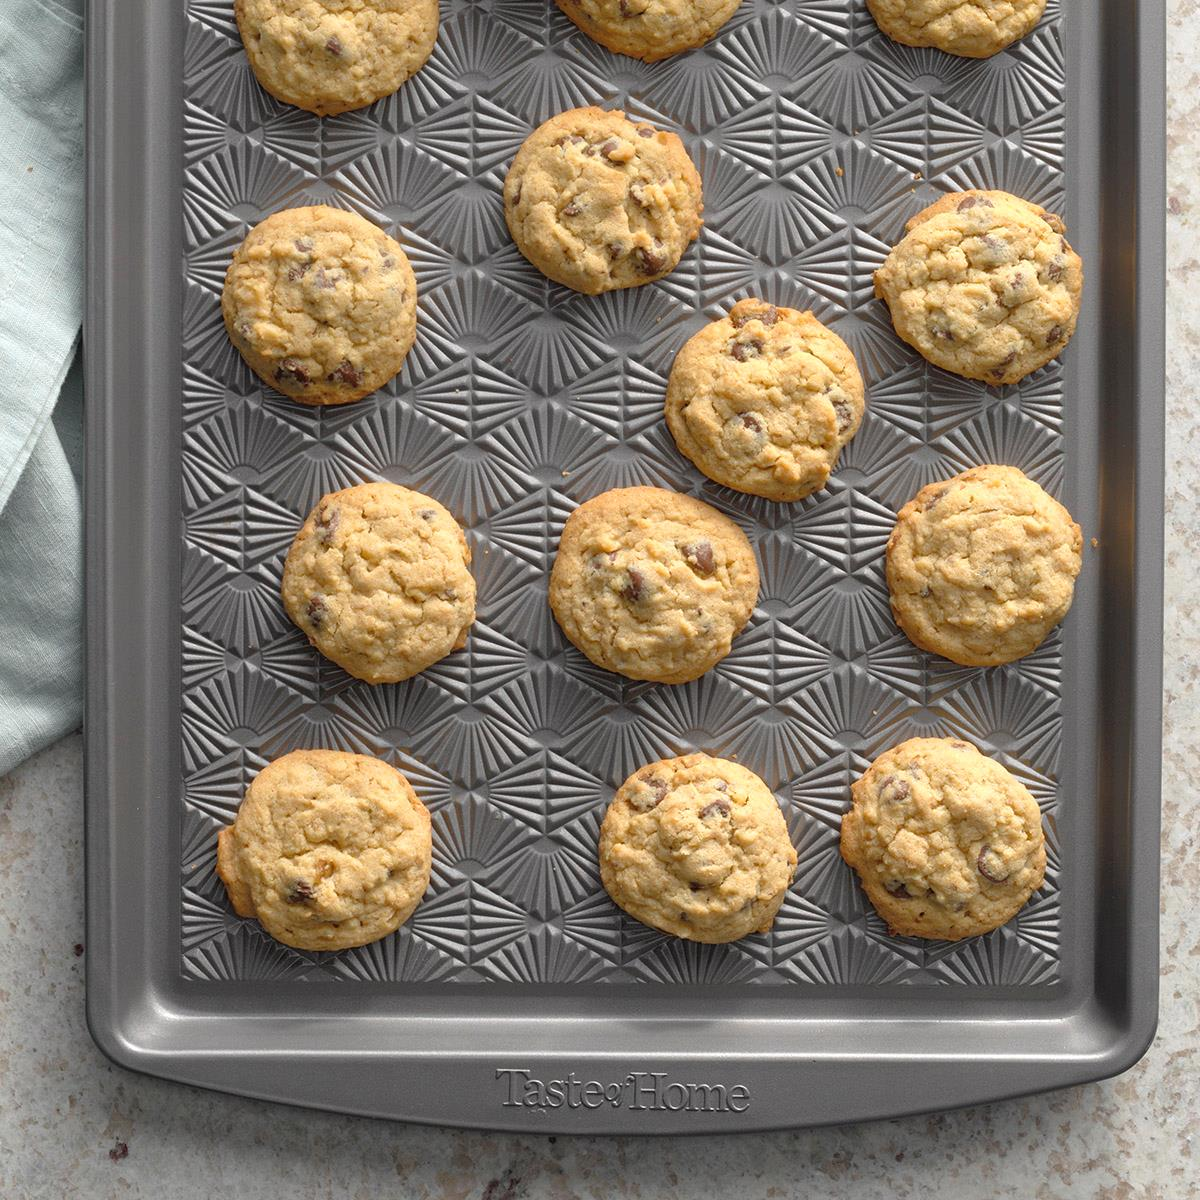 Chewy Chocolate Chip Cookies image